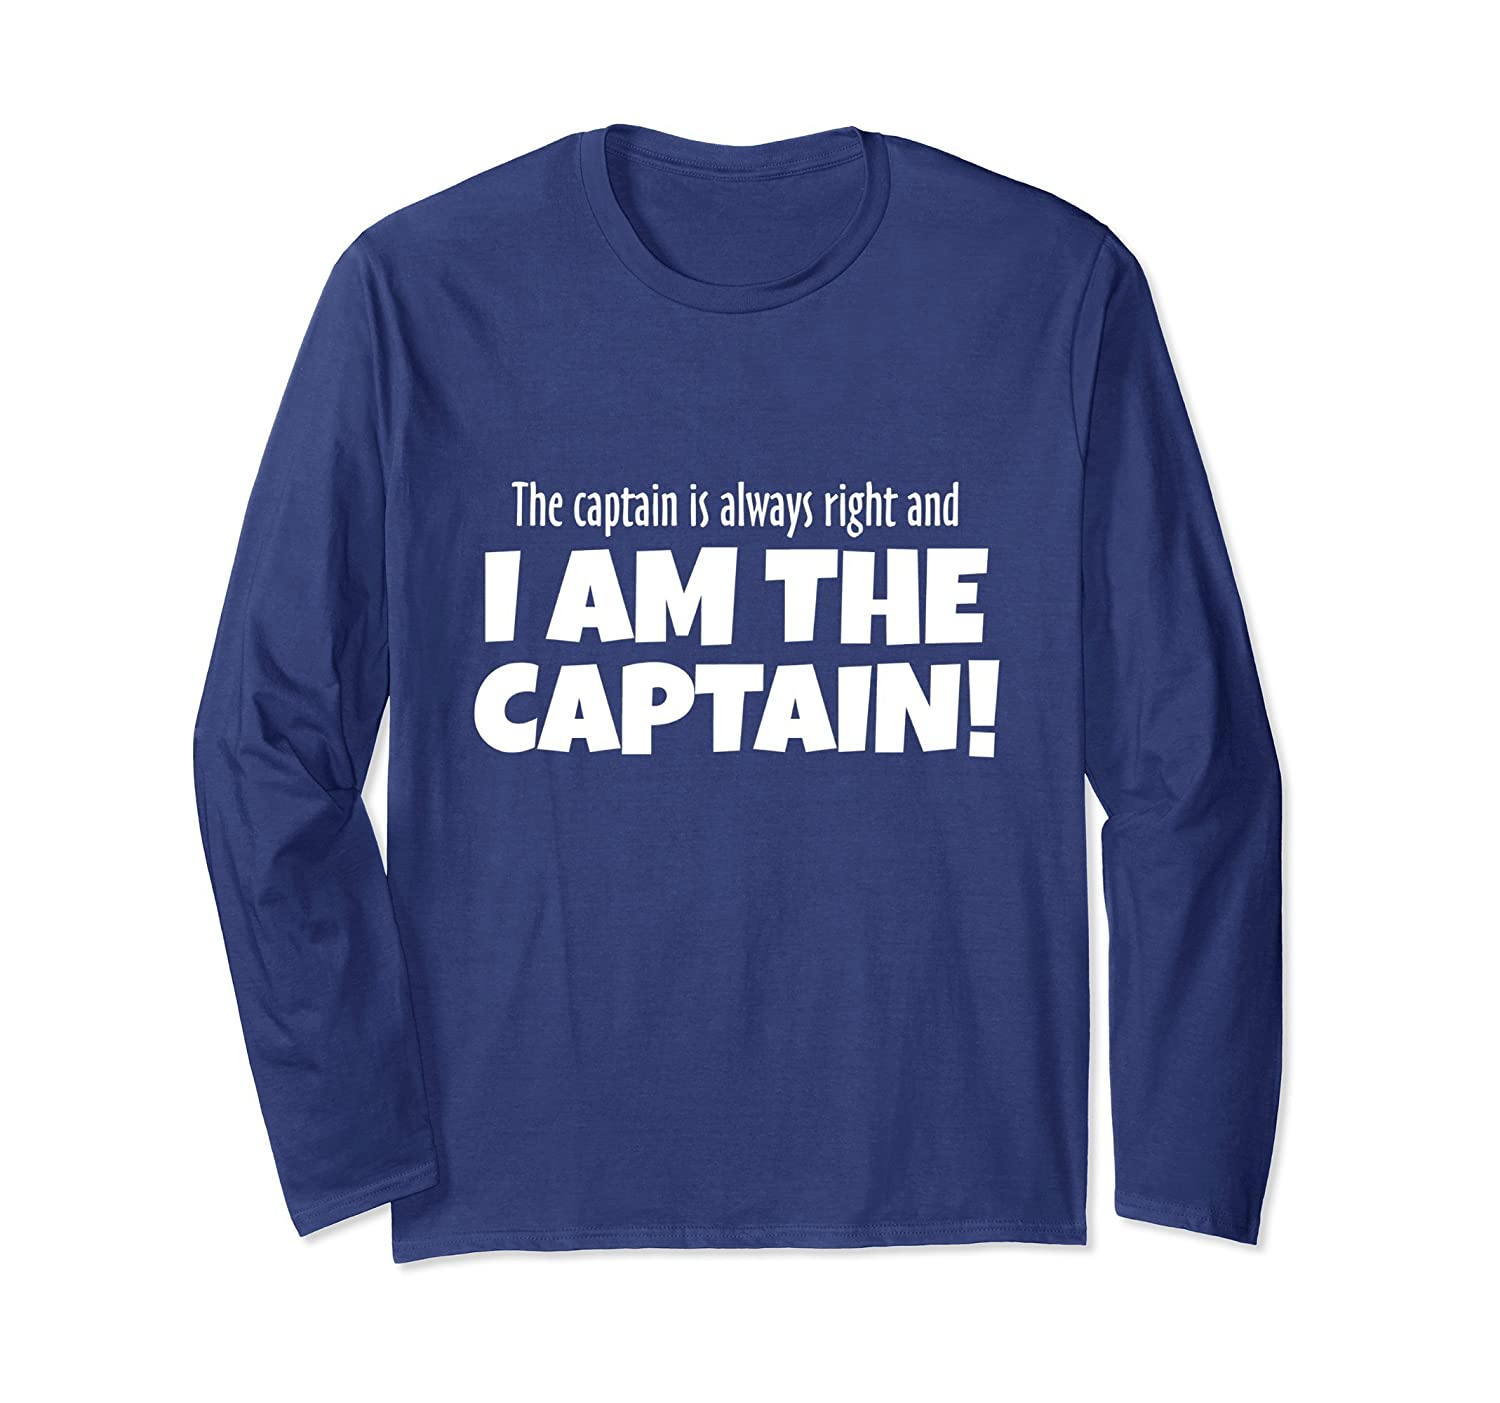 The Captain Is Always Right - Sail Shirts for Captains-TH